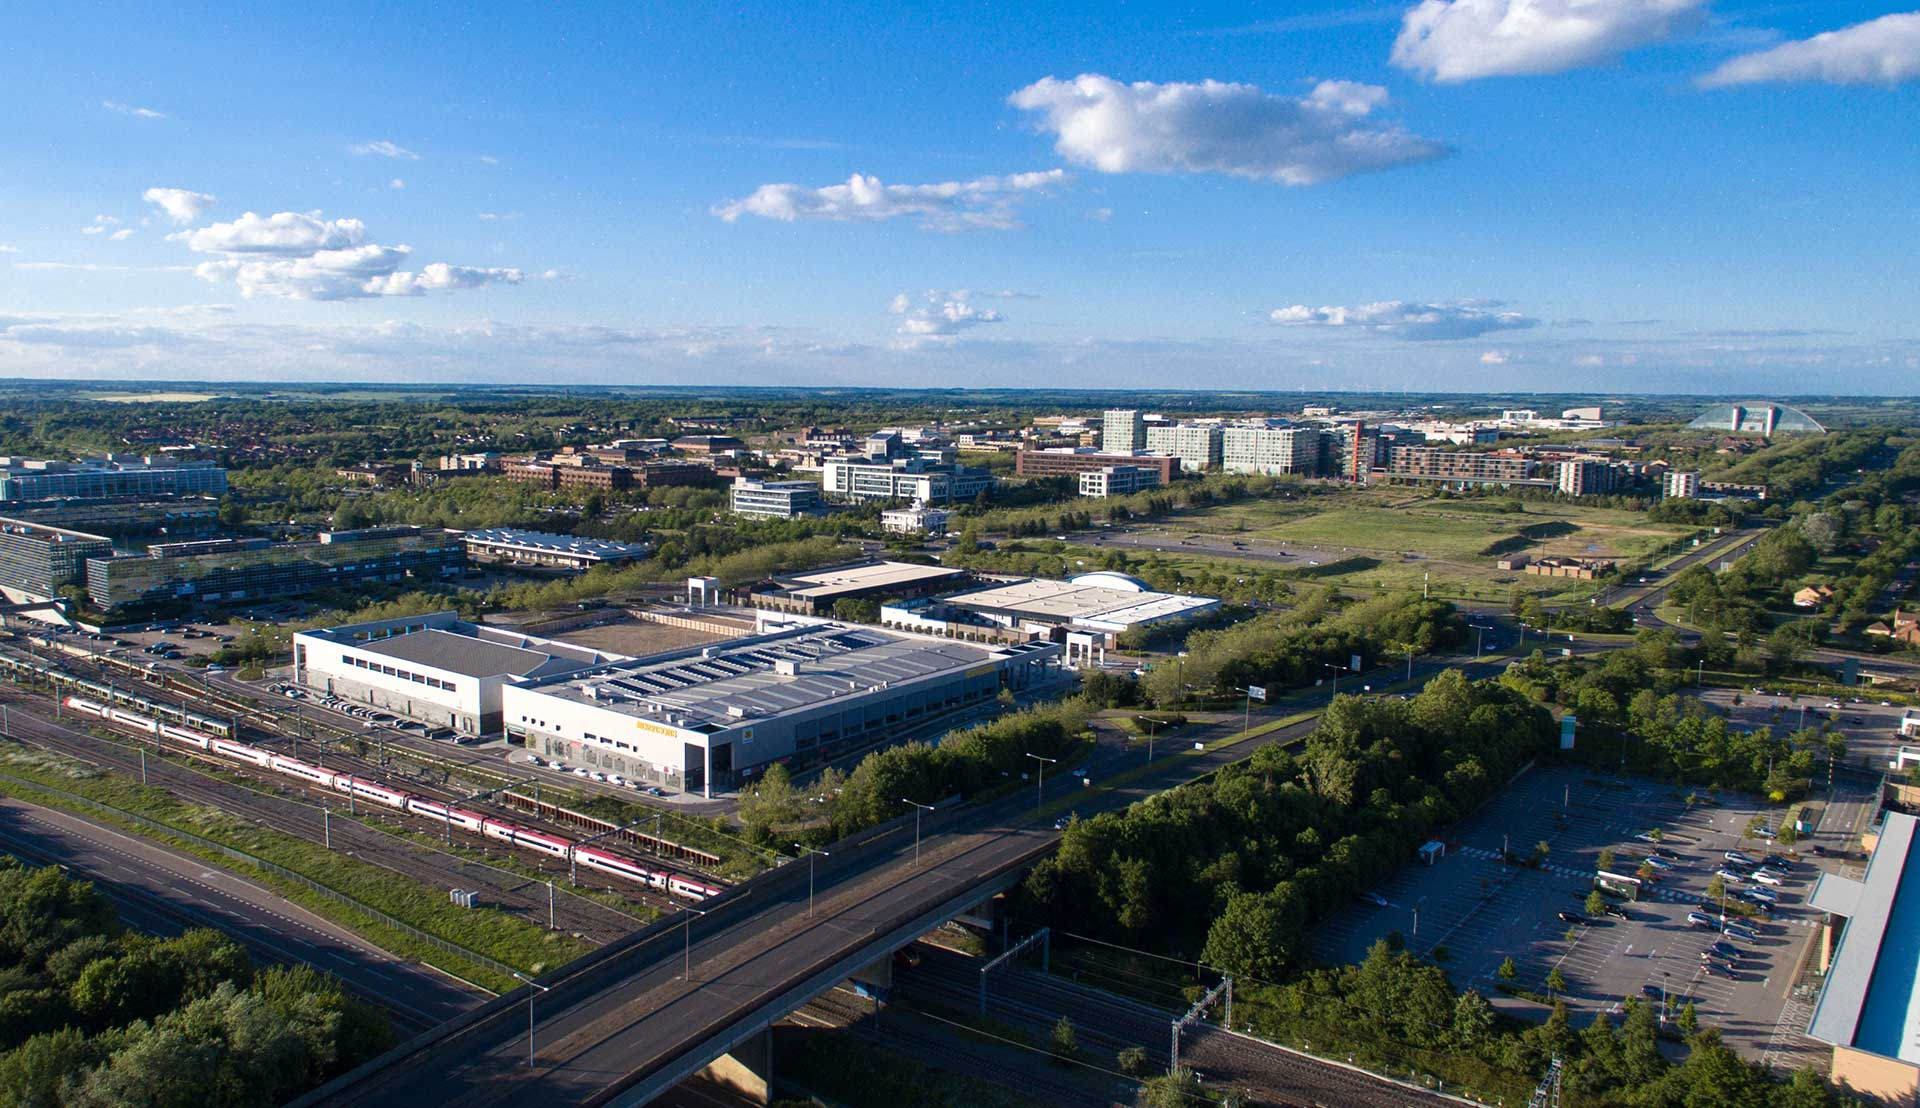 Aerial View of Milton Keynes